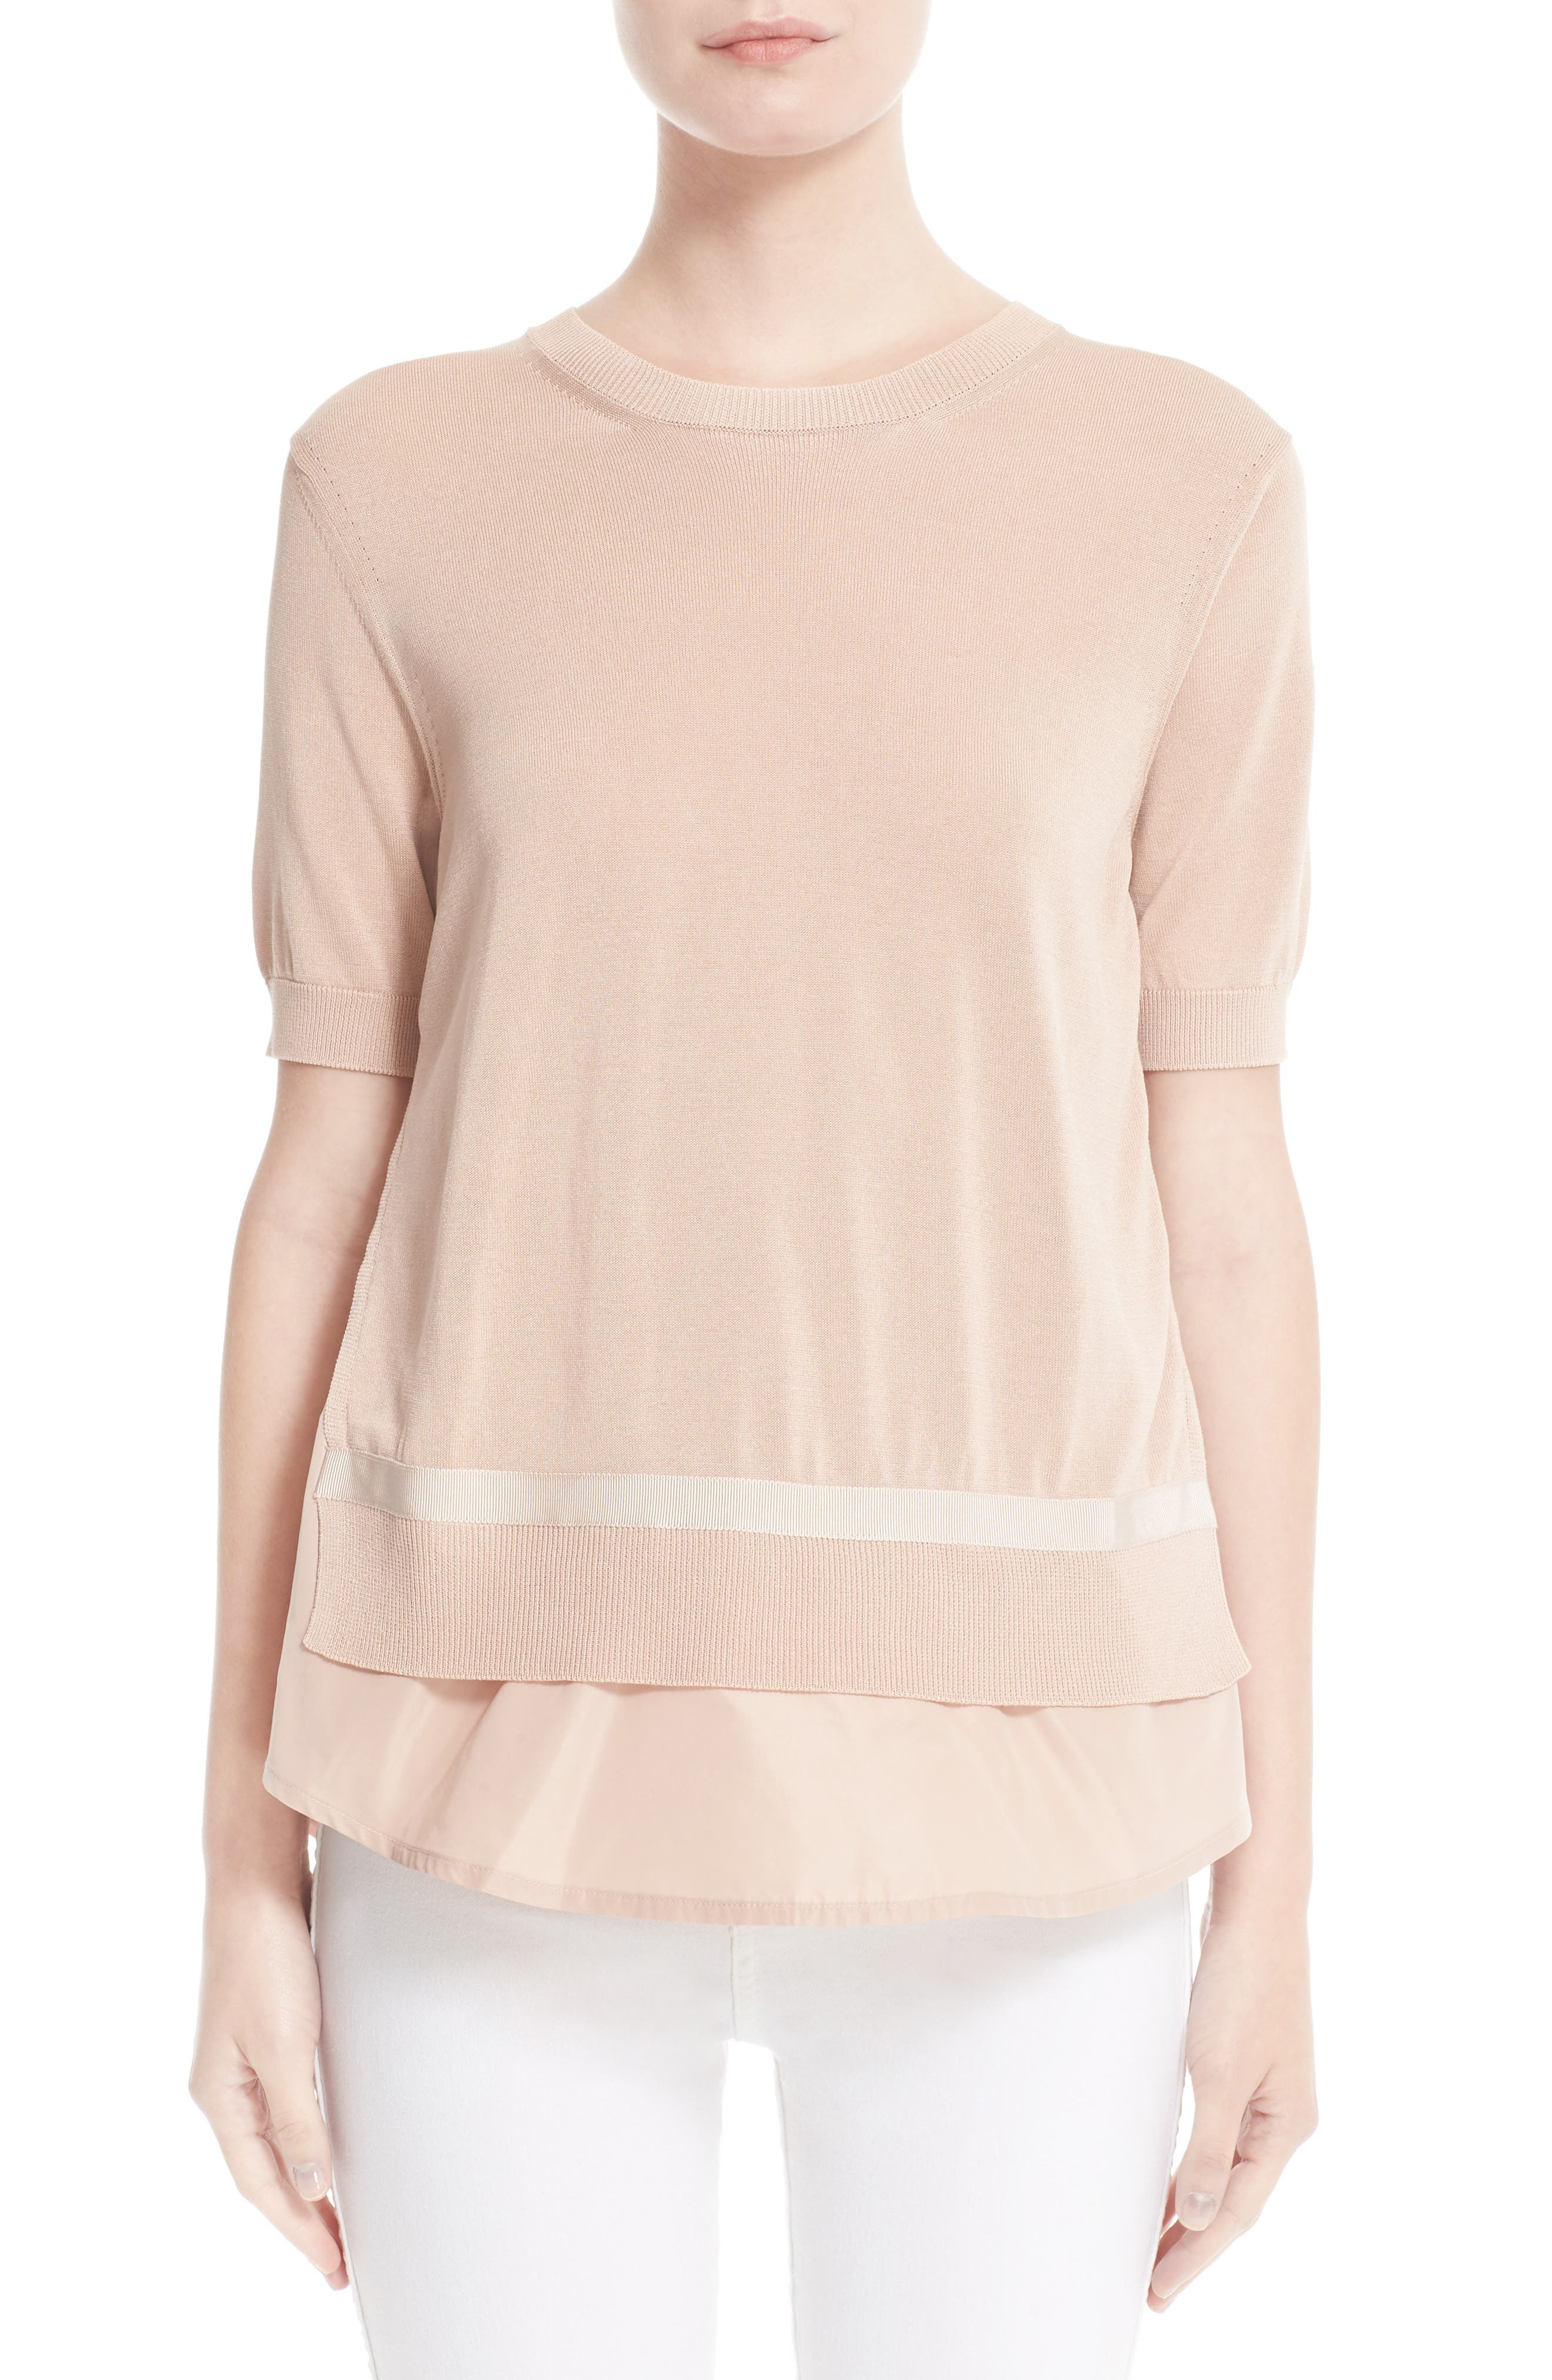 Tricot Knit Top,                         Main,                         color, BLUSH